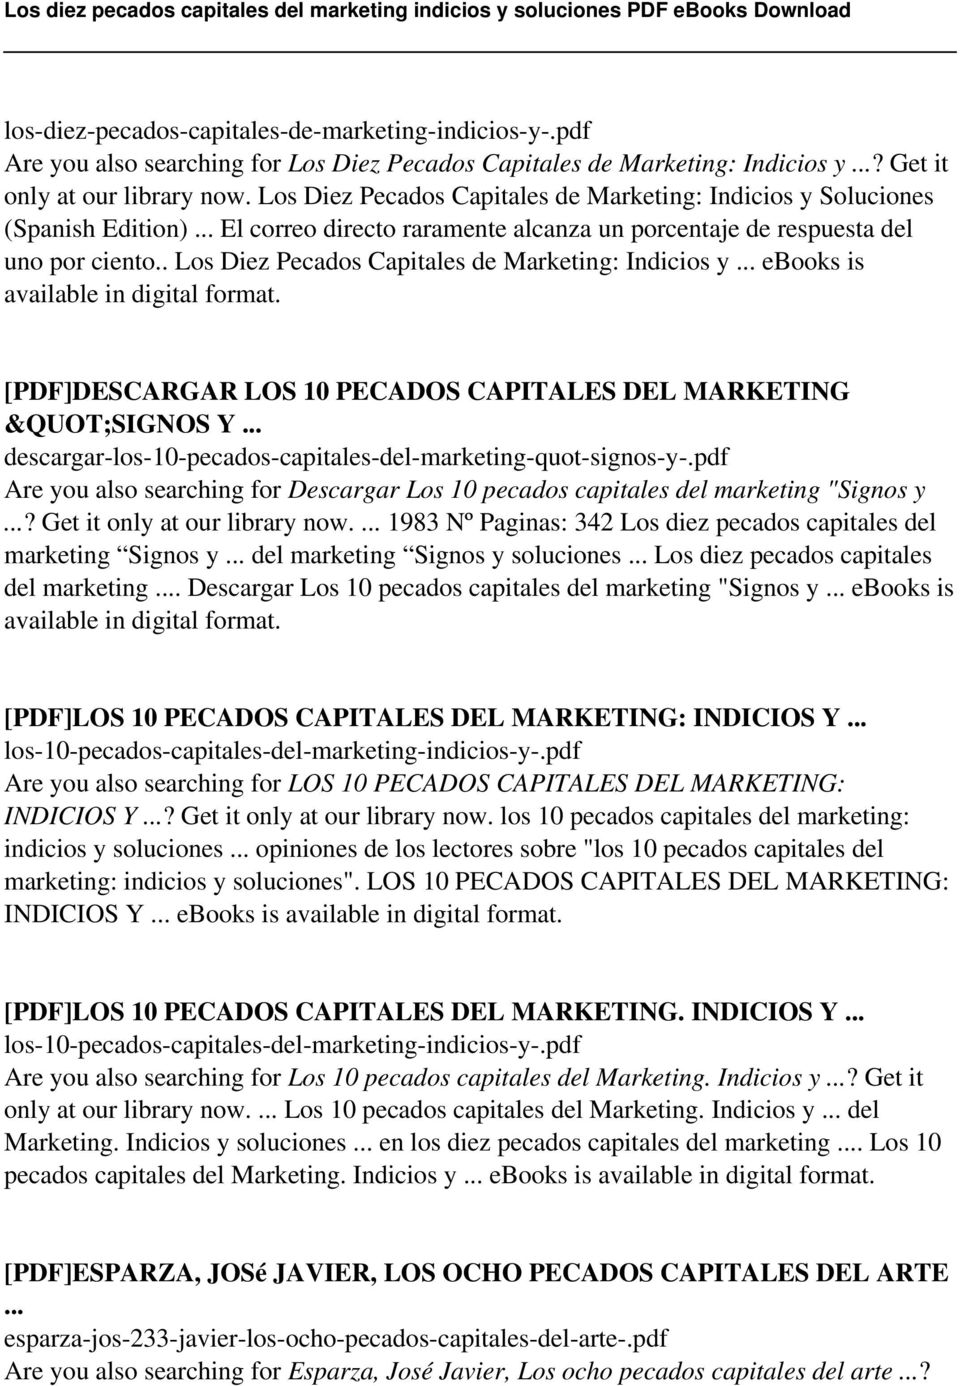 ". Los Diez Pecados Capitales de Marketing: Indicios y... ebooks is [PDF]DESCARGAR LOS 10 PECADOS CAPITALES DEL MARKETING ""SIGNOS Y."